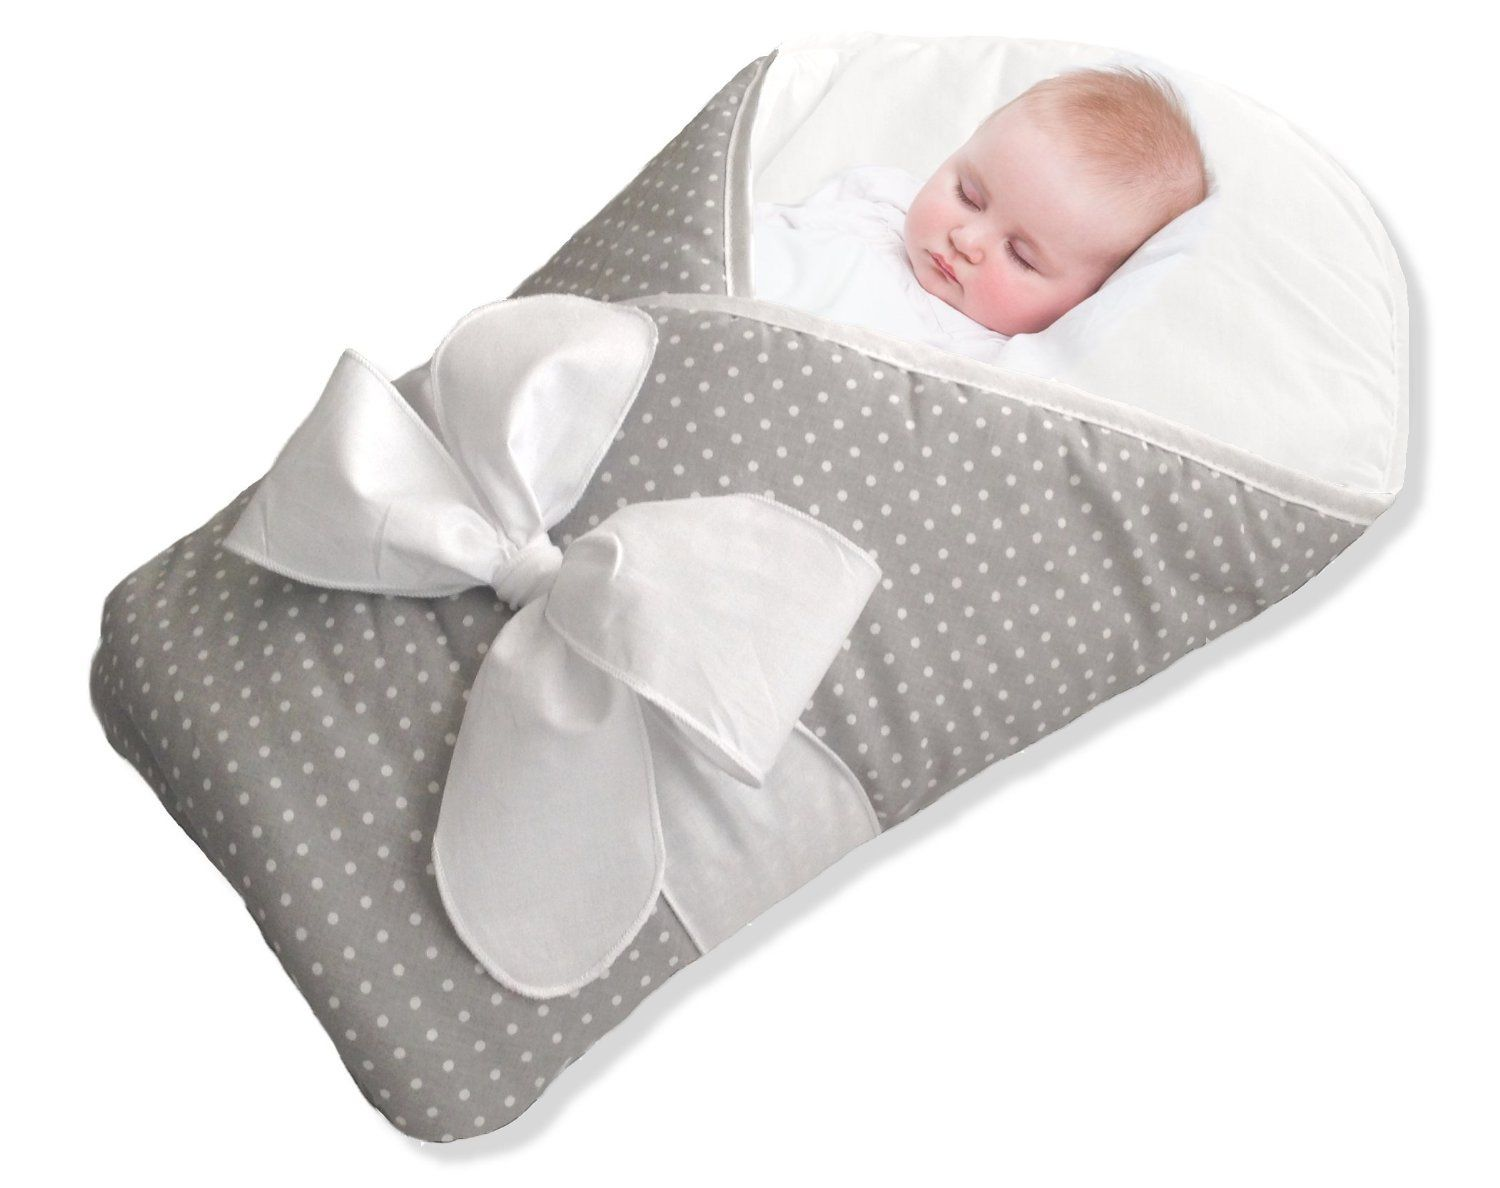 BundleBee Baby Wrap/Swaddle/Blanket, Feather Light/Gray Polka Dot, 0-4 Months